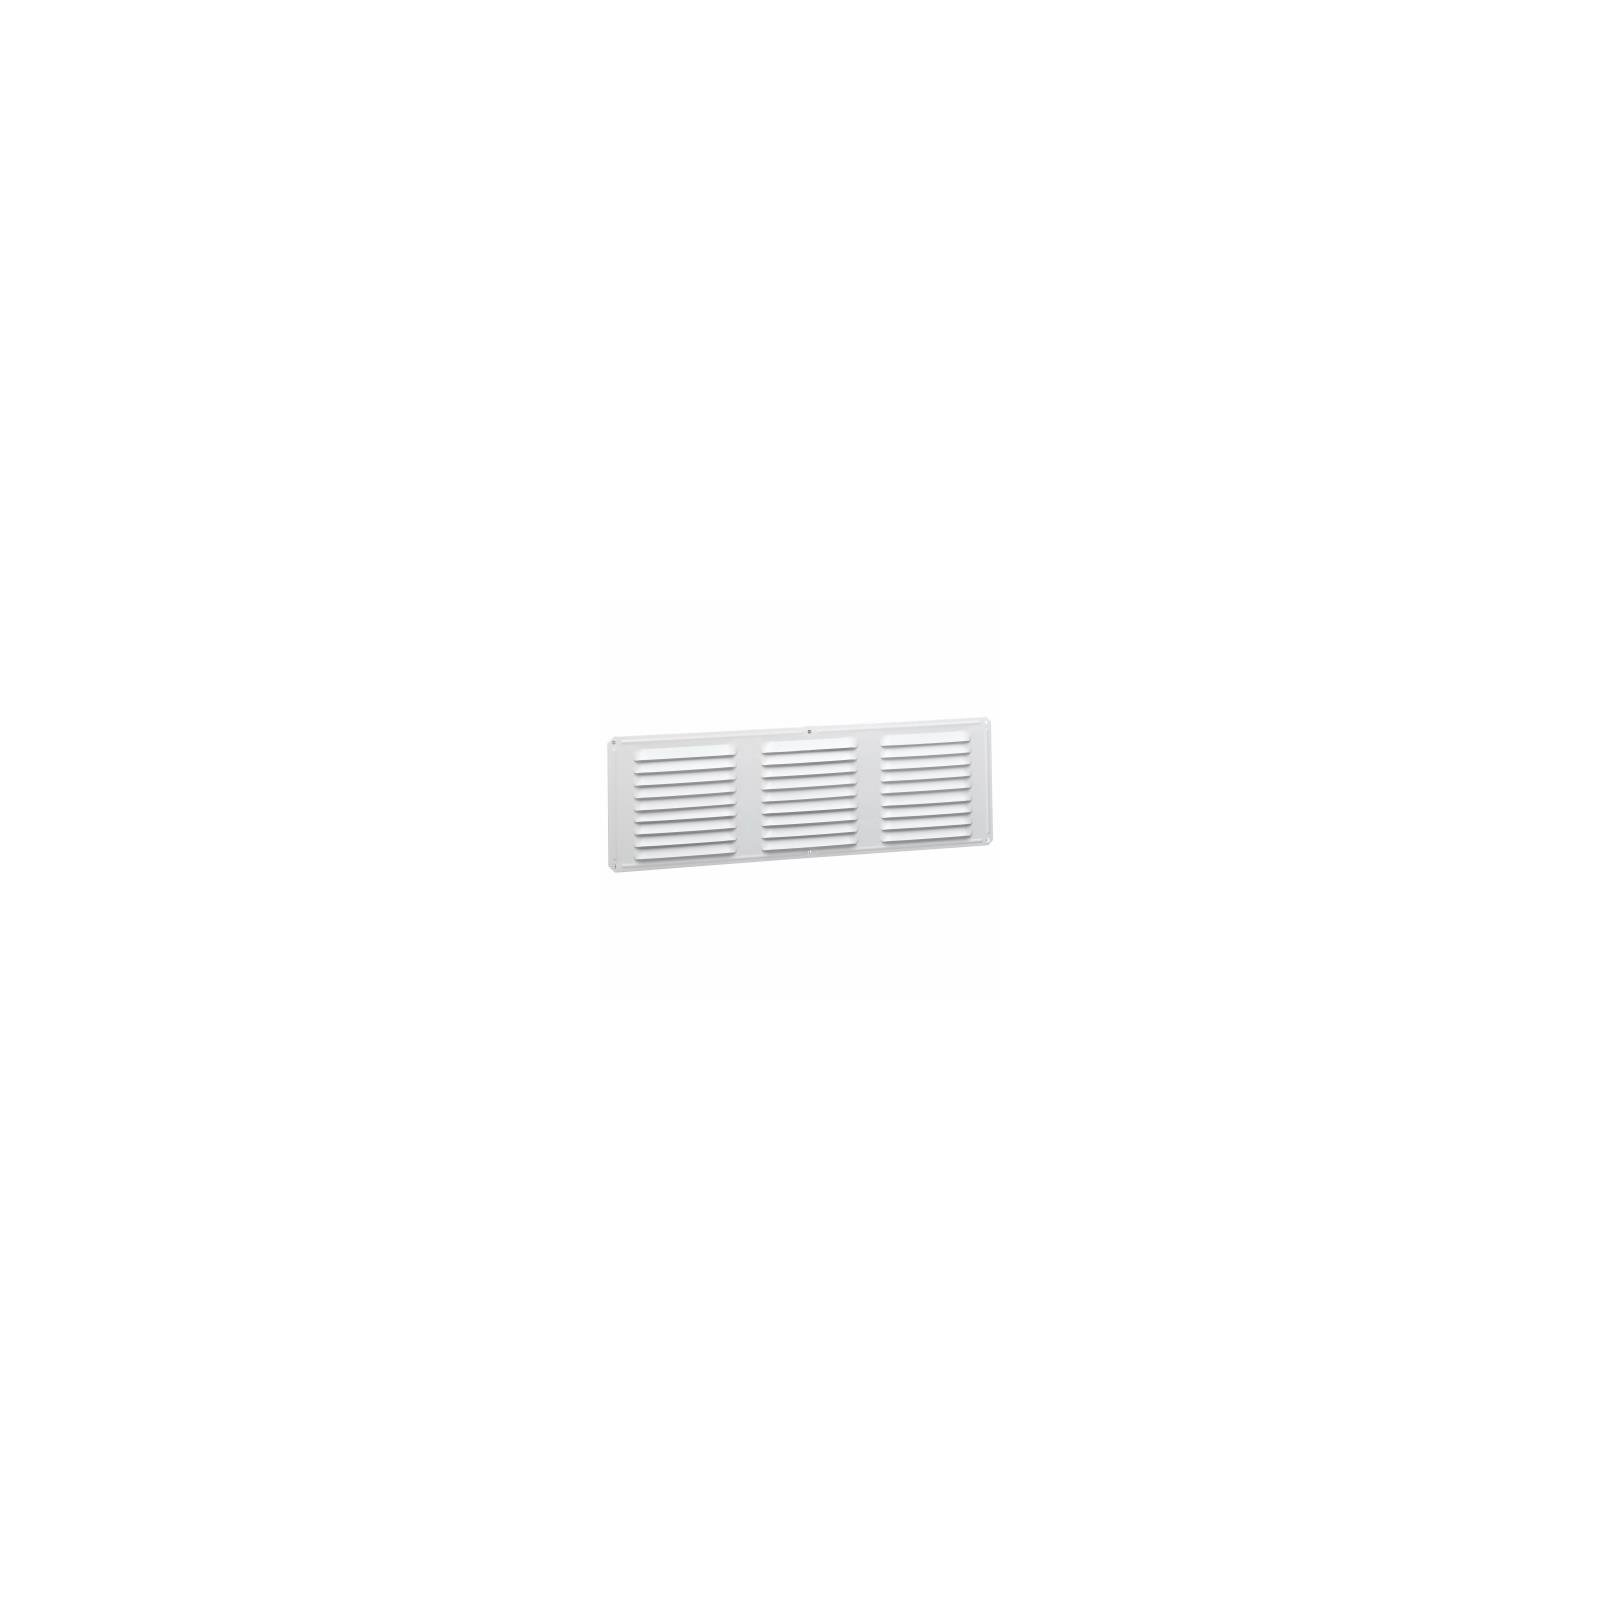 Air Vent Undereave Vent 16'' X 6'' 42 Sq. In. Of Net Free Area Aluminum White